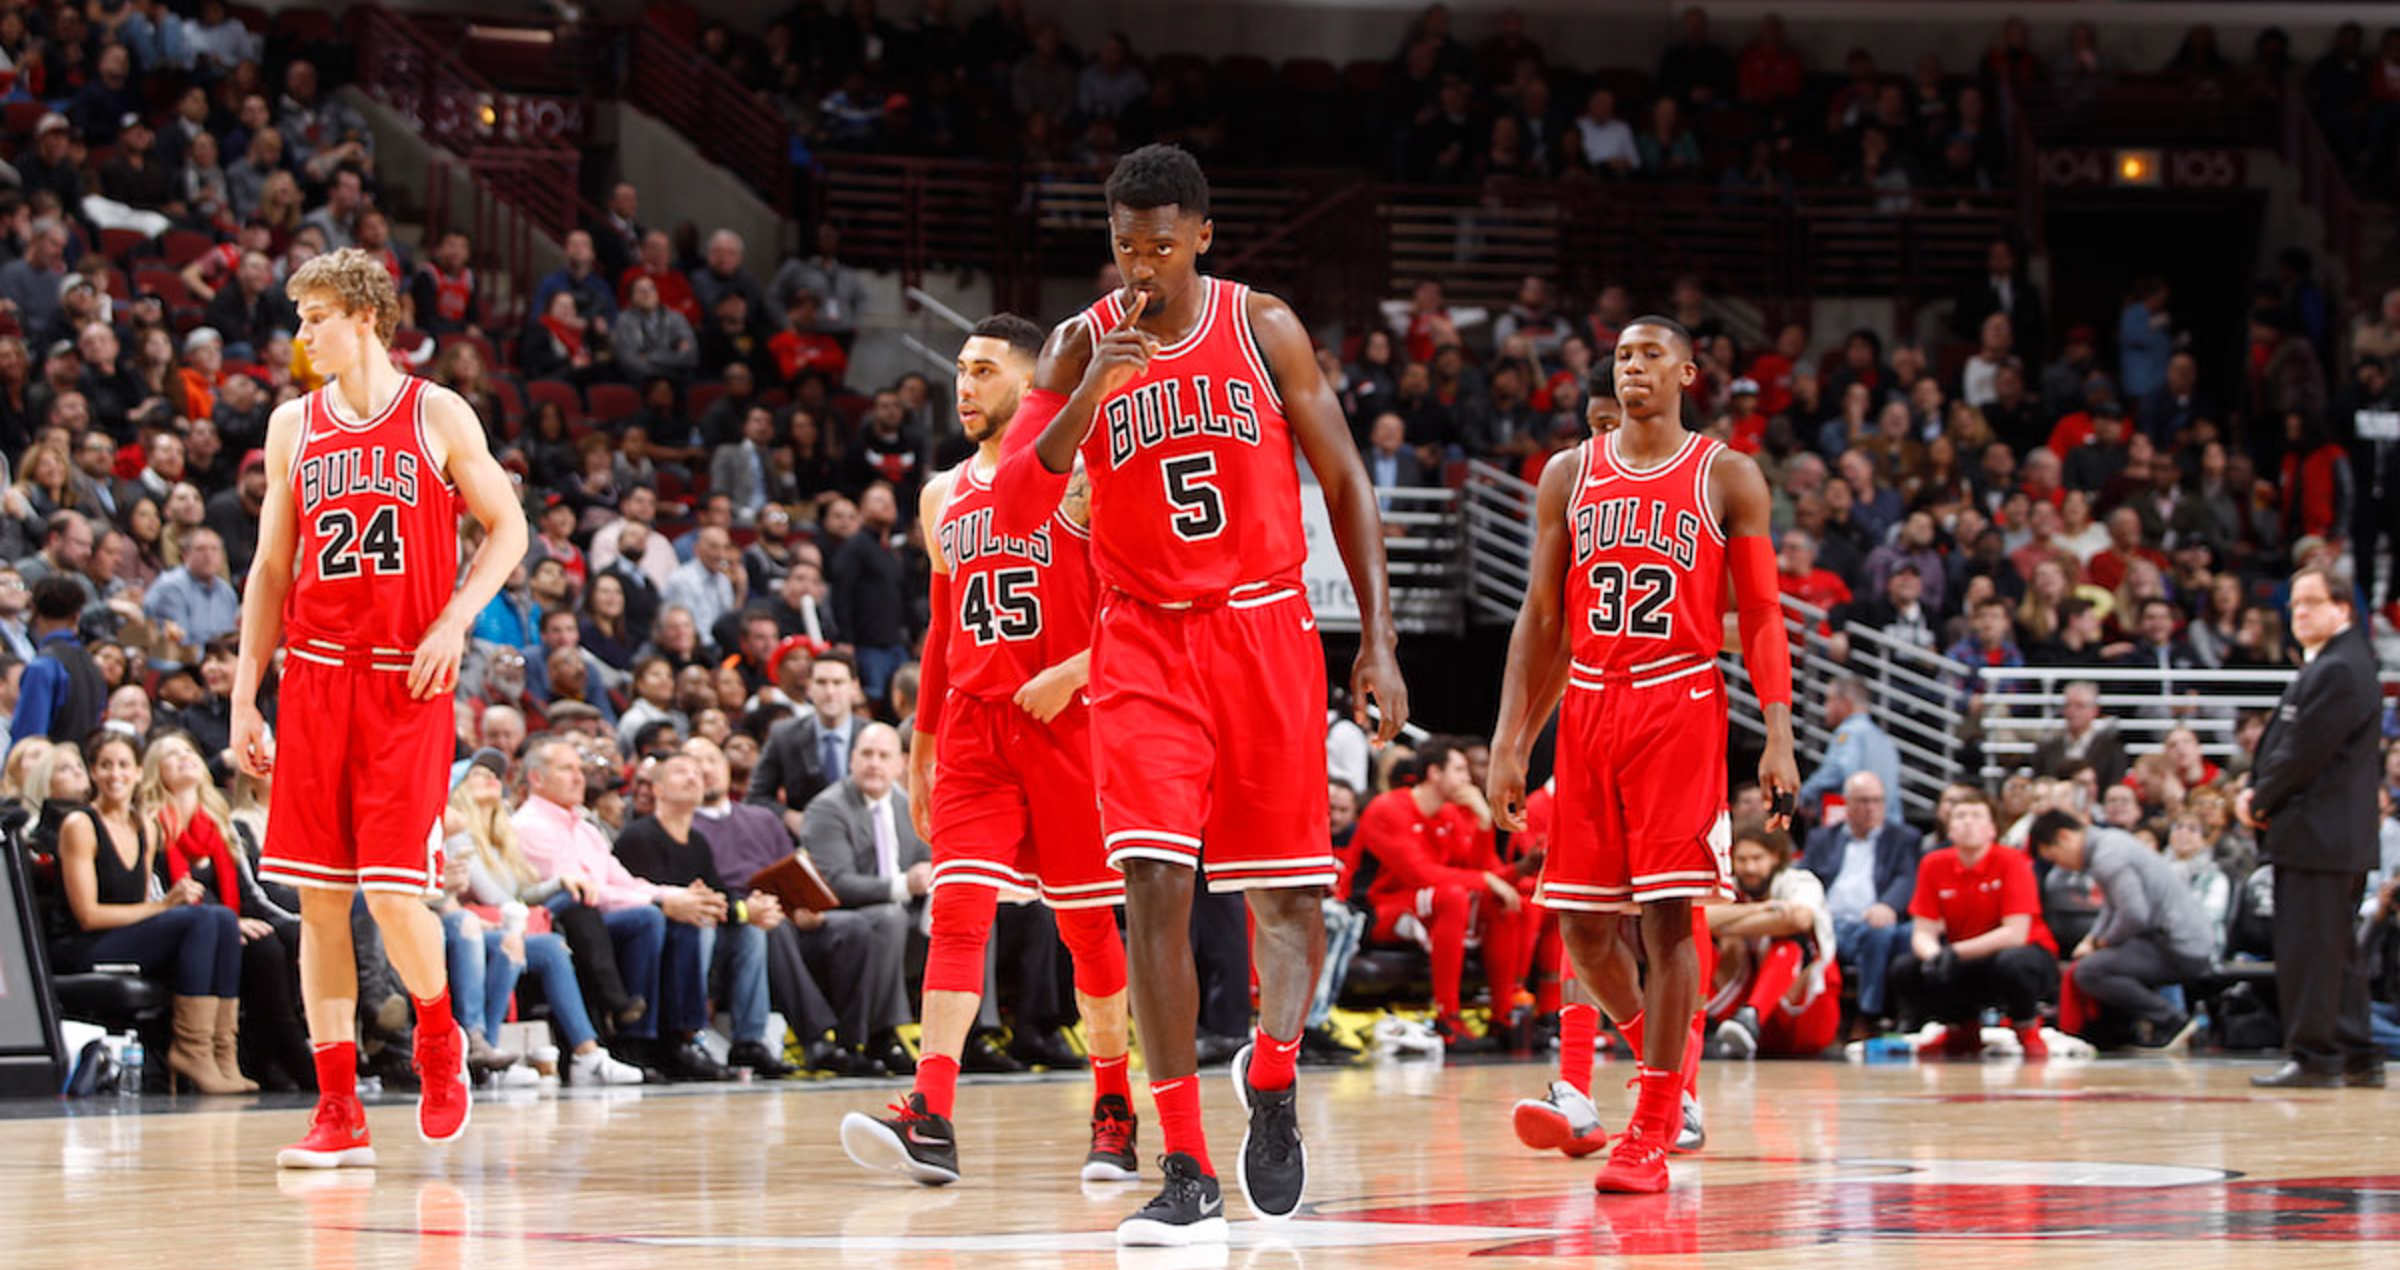 the Bulls get back on to the court